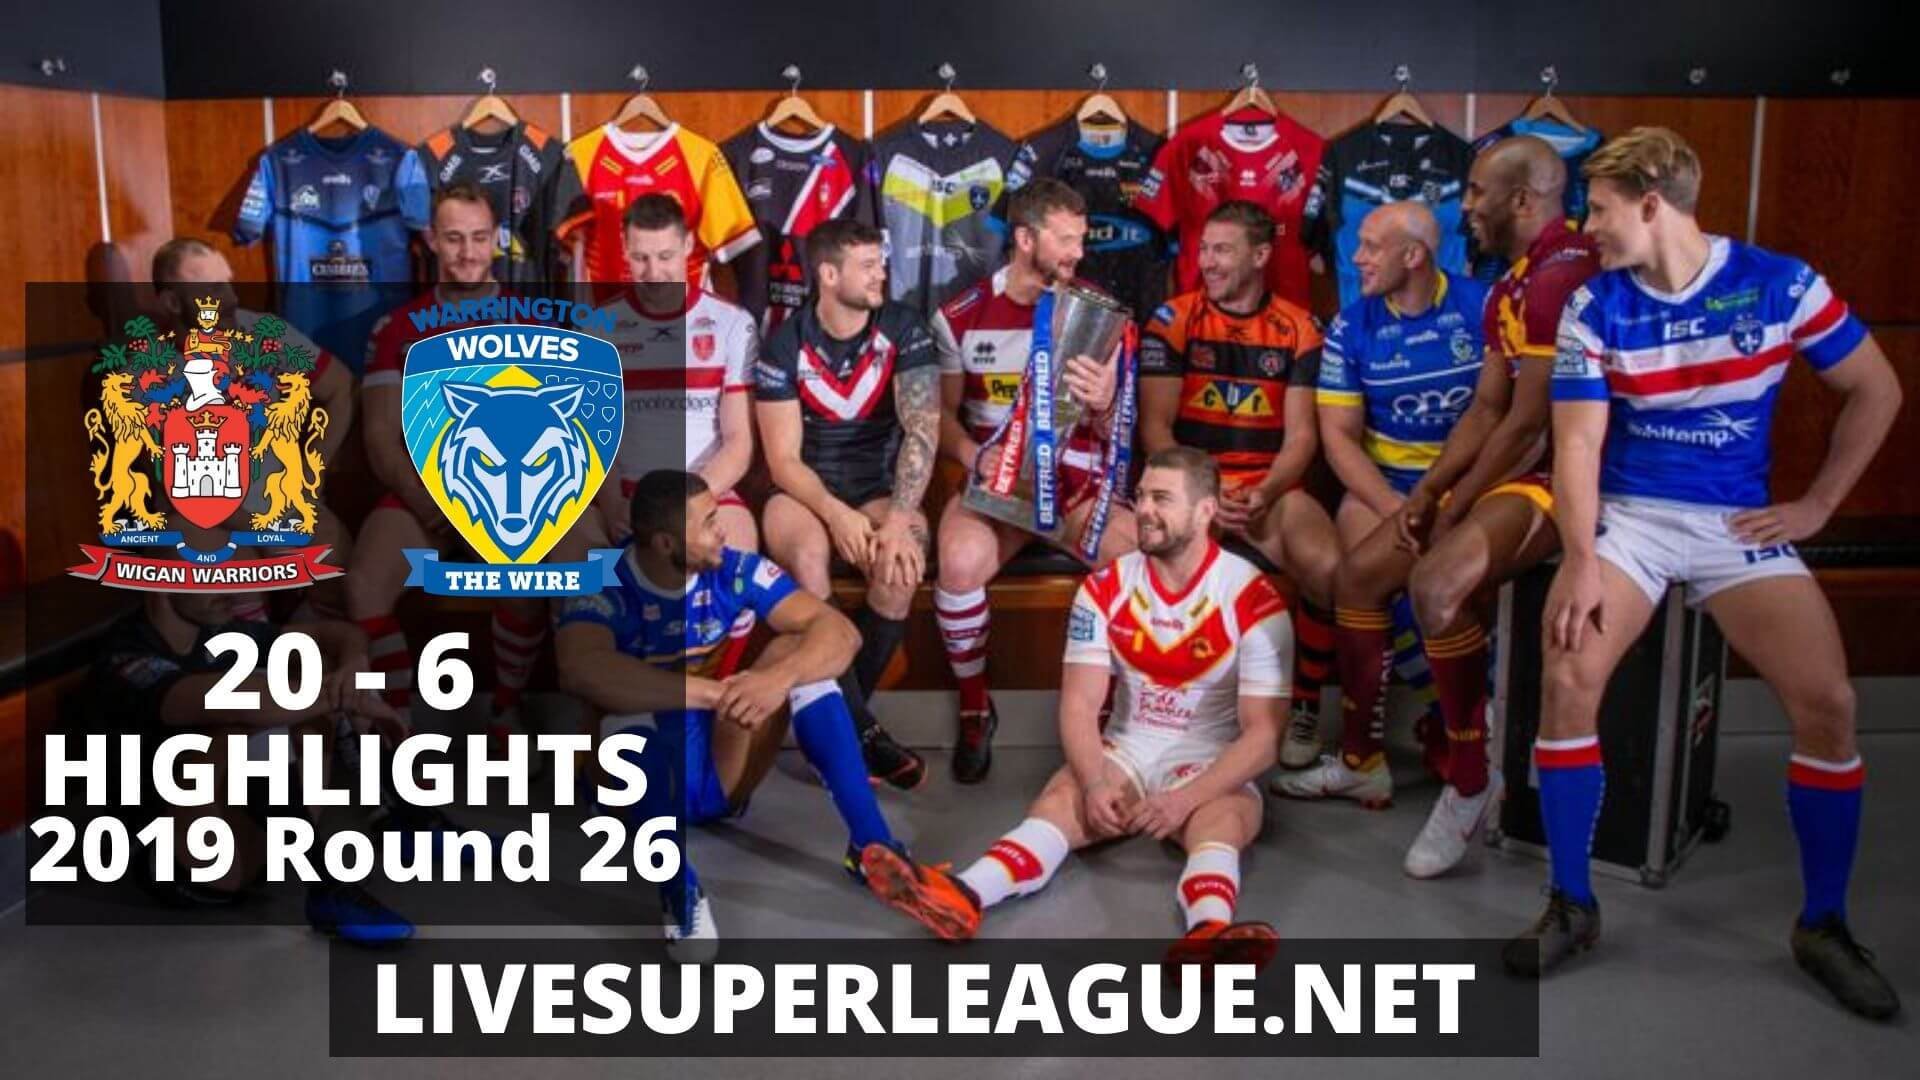 Wigan Warriors Vs Warrington Wolves Highlights 2019 Round 26